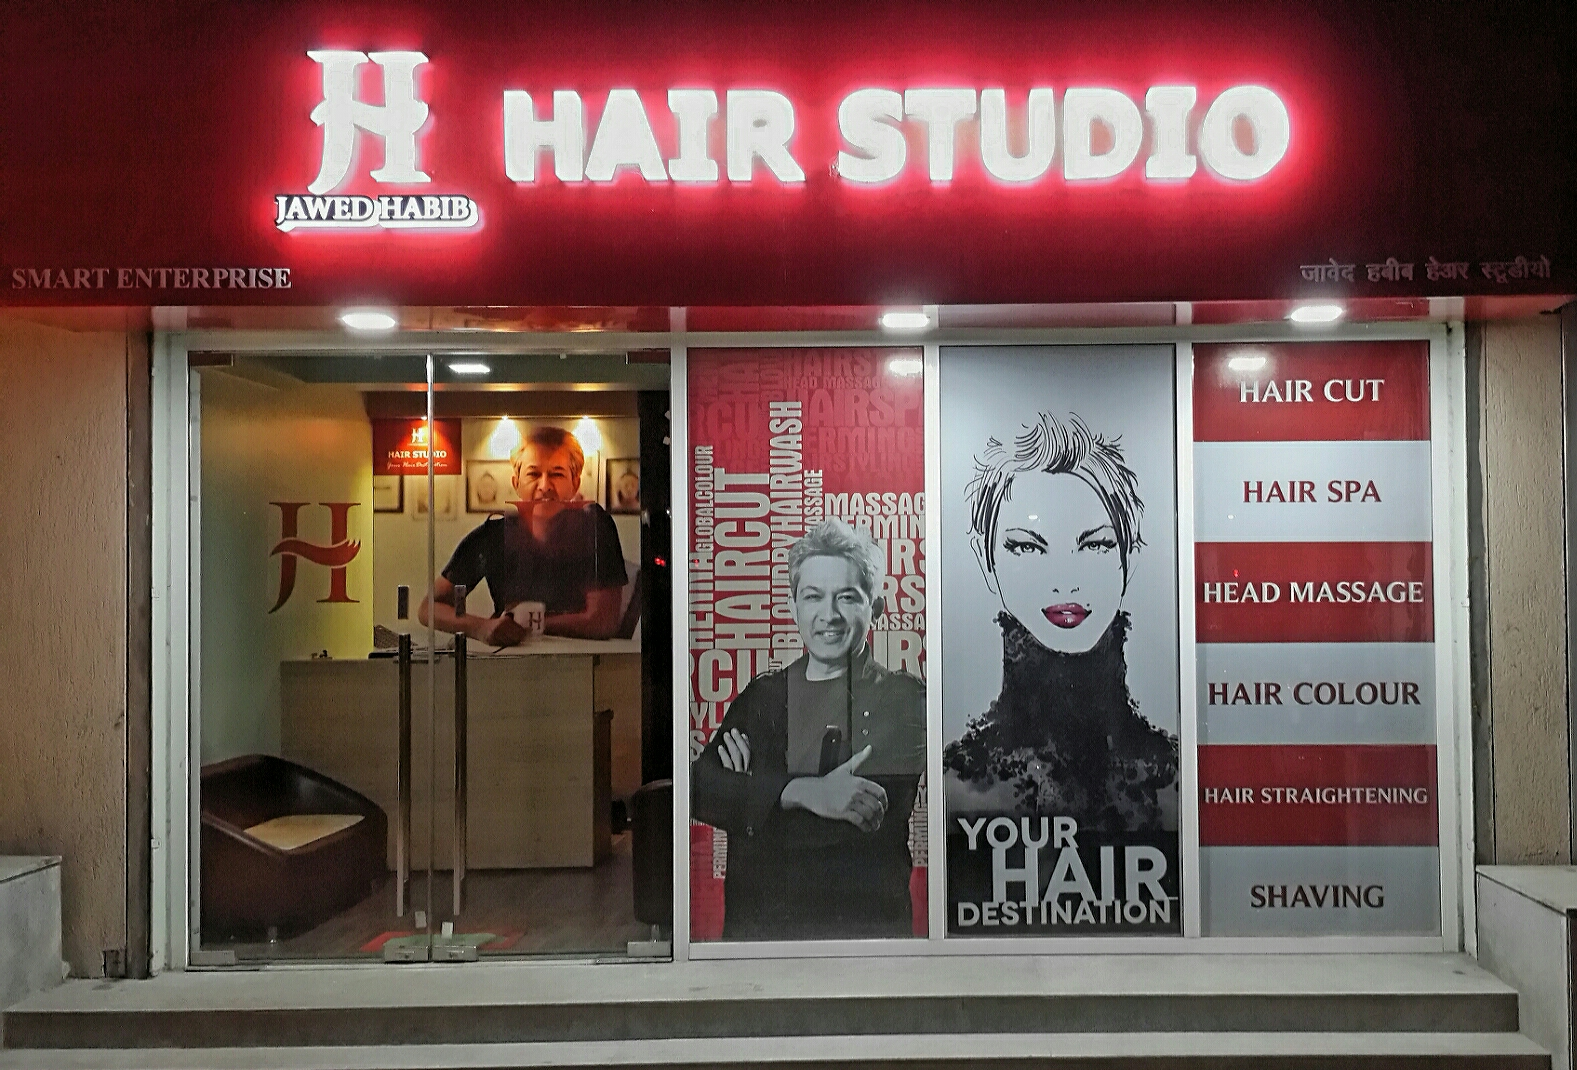 Jawed Habib Hair Studio Thane Excellent Hair Care At Reasonable